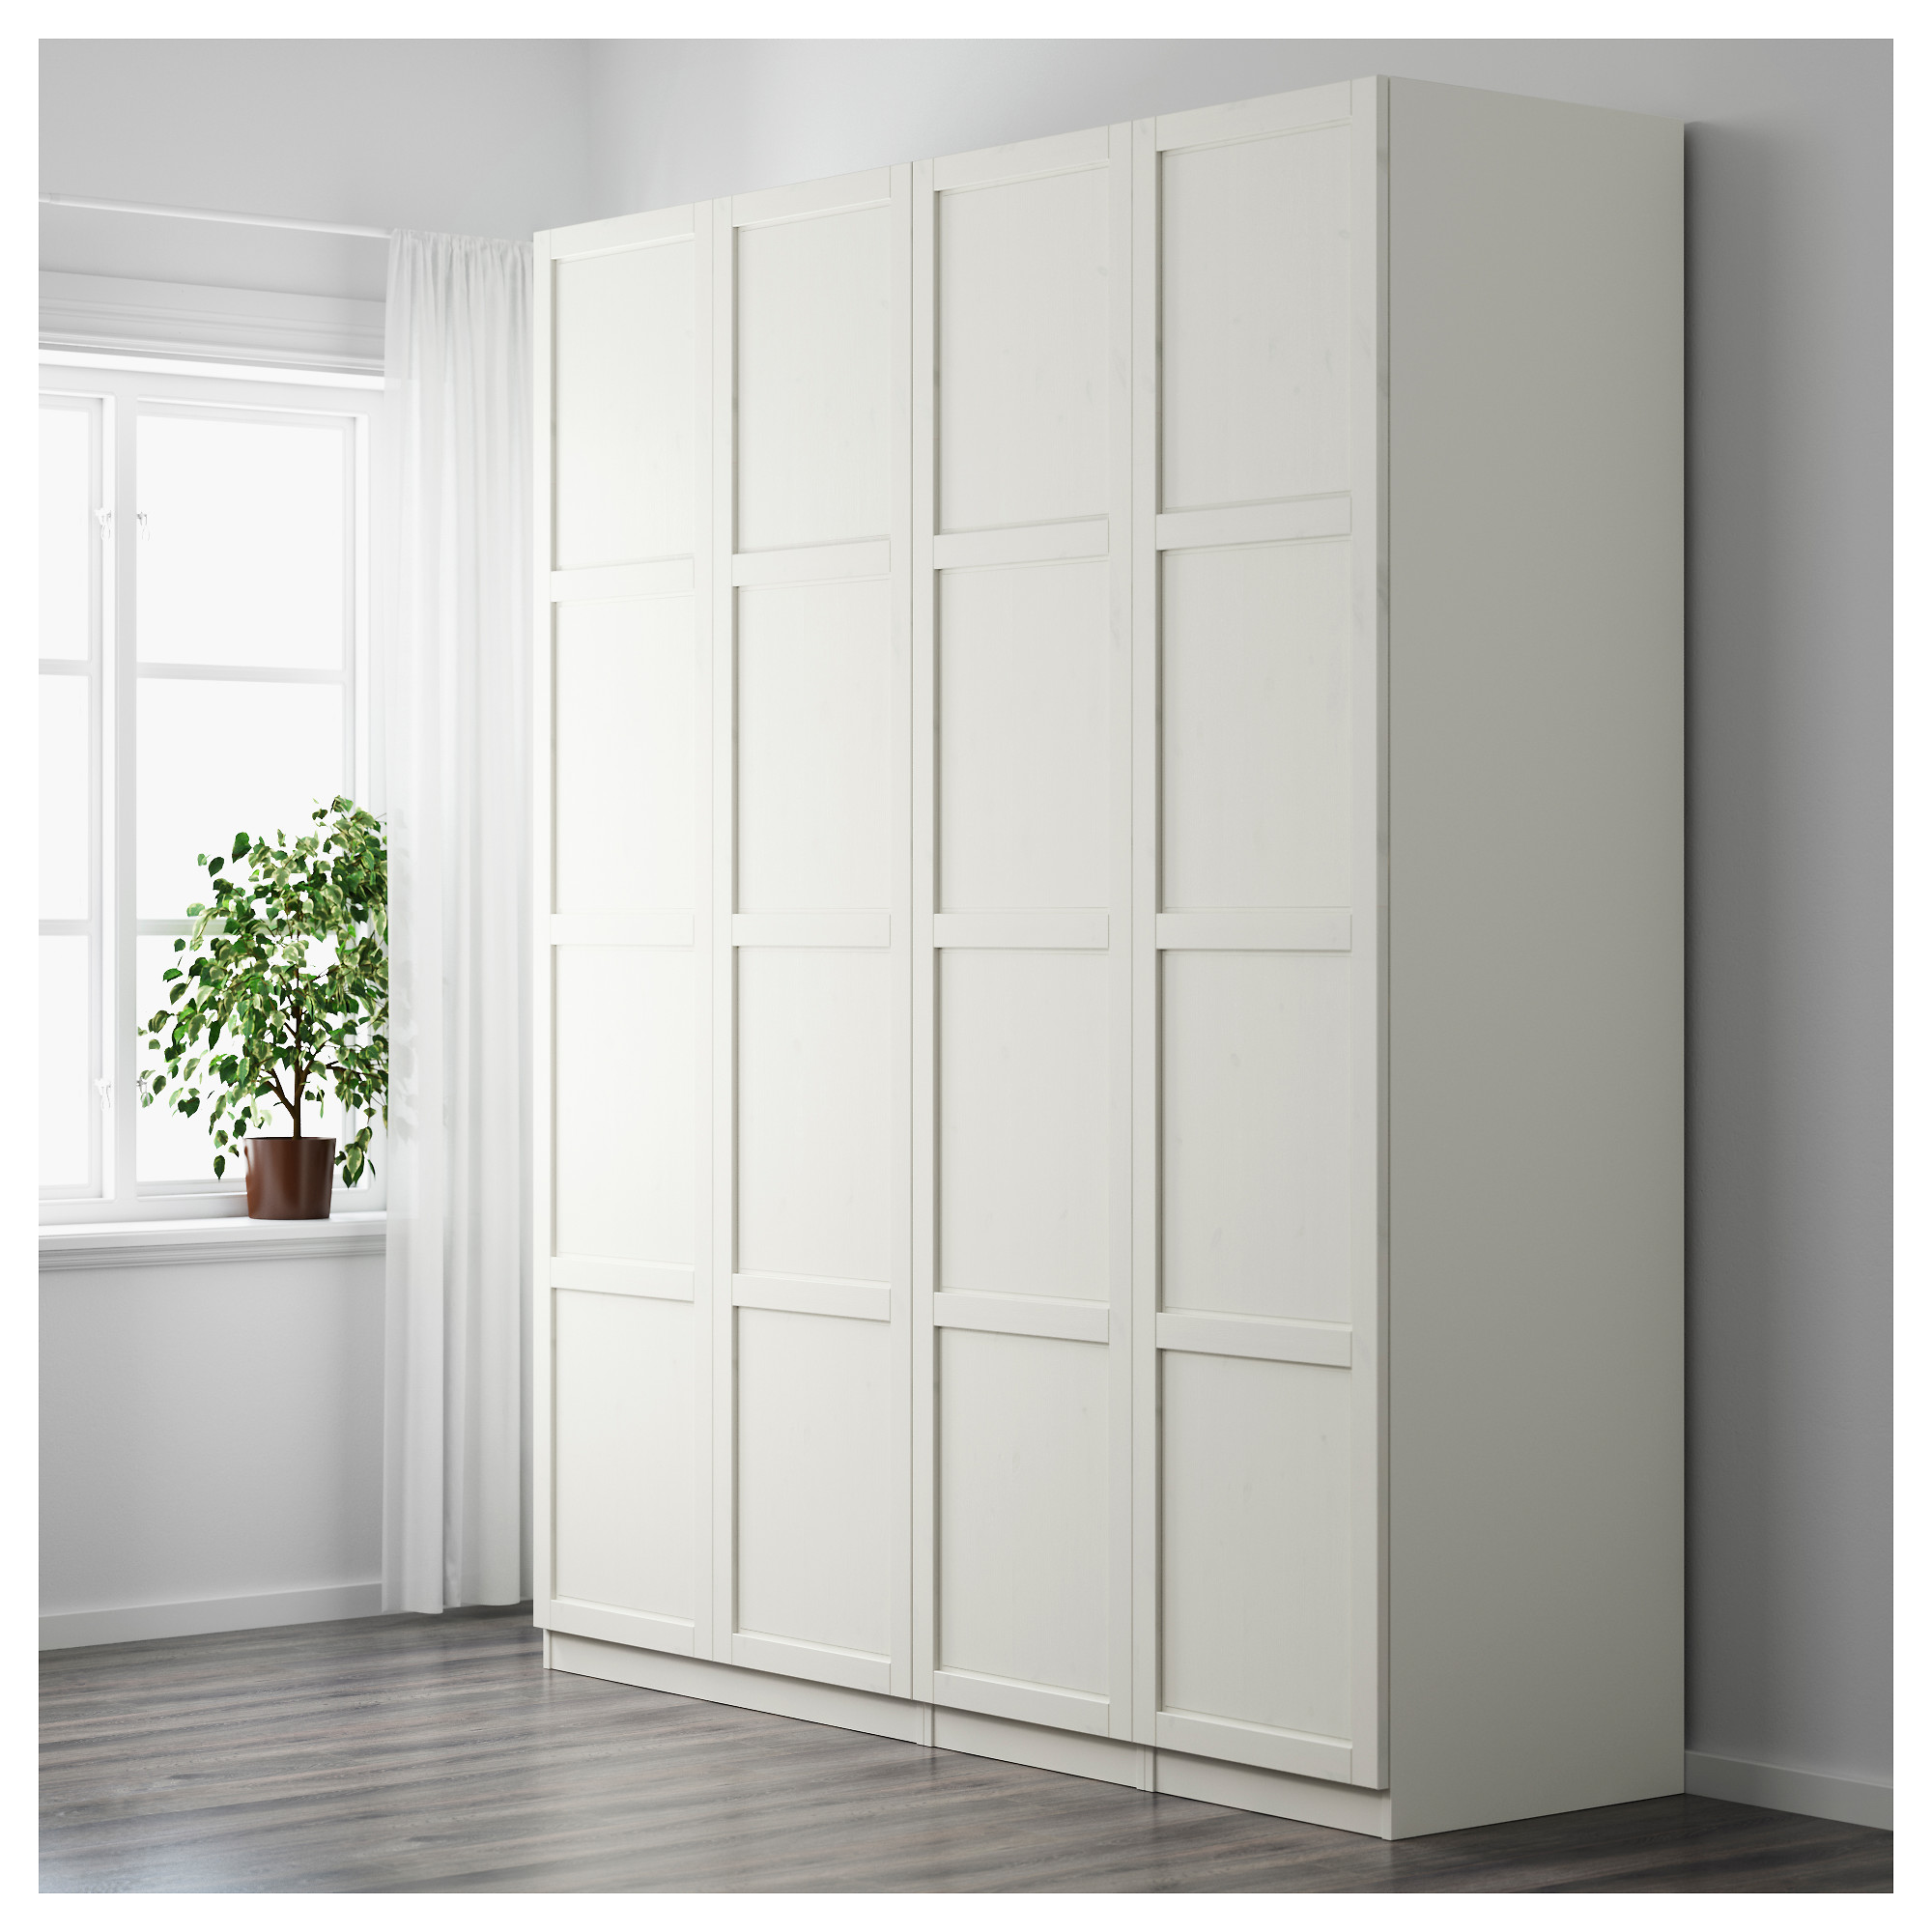 Image Result For Ikea Wardrobe Pax